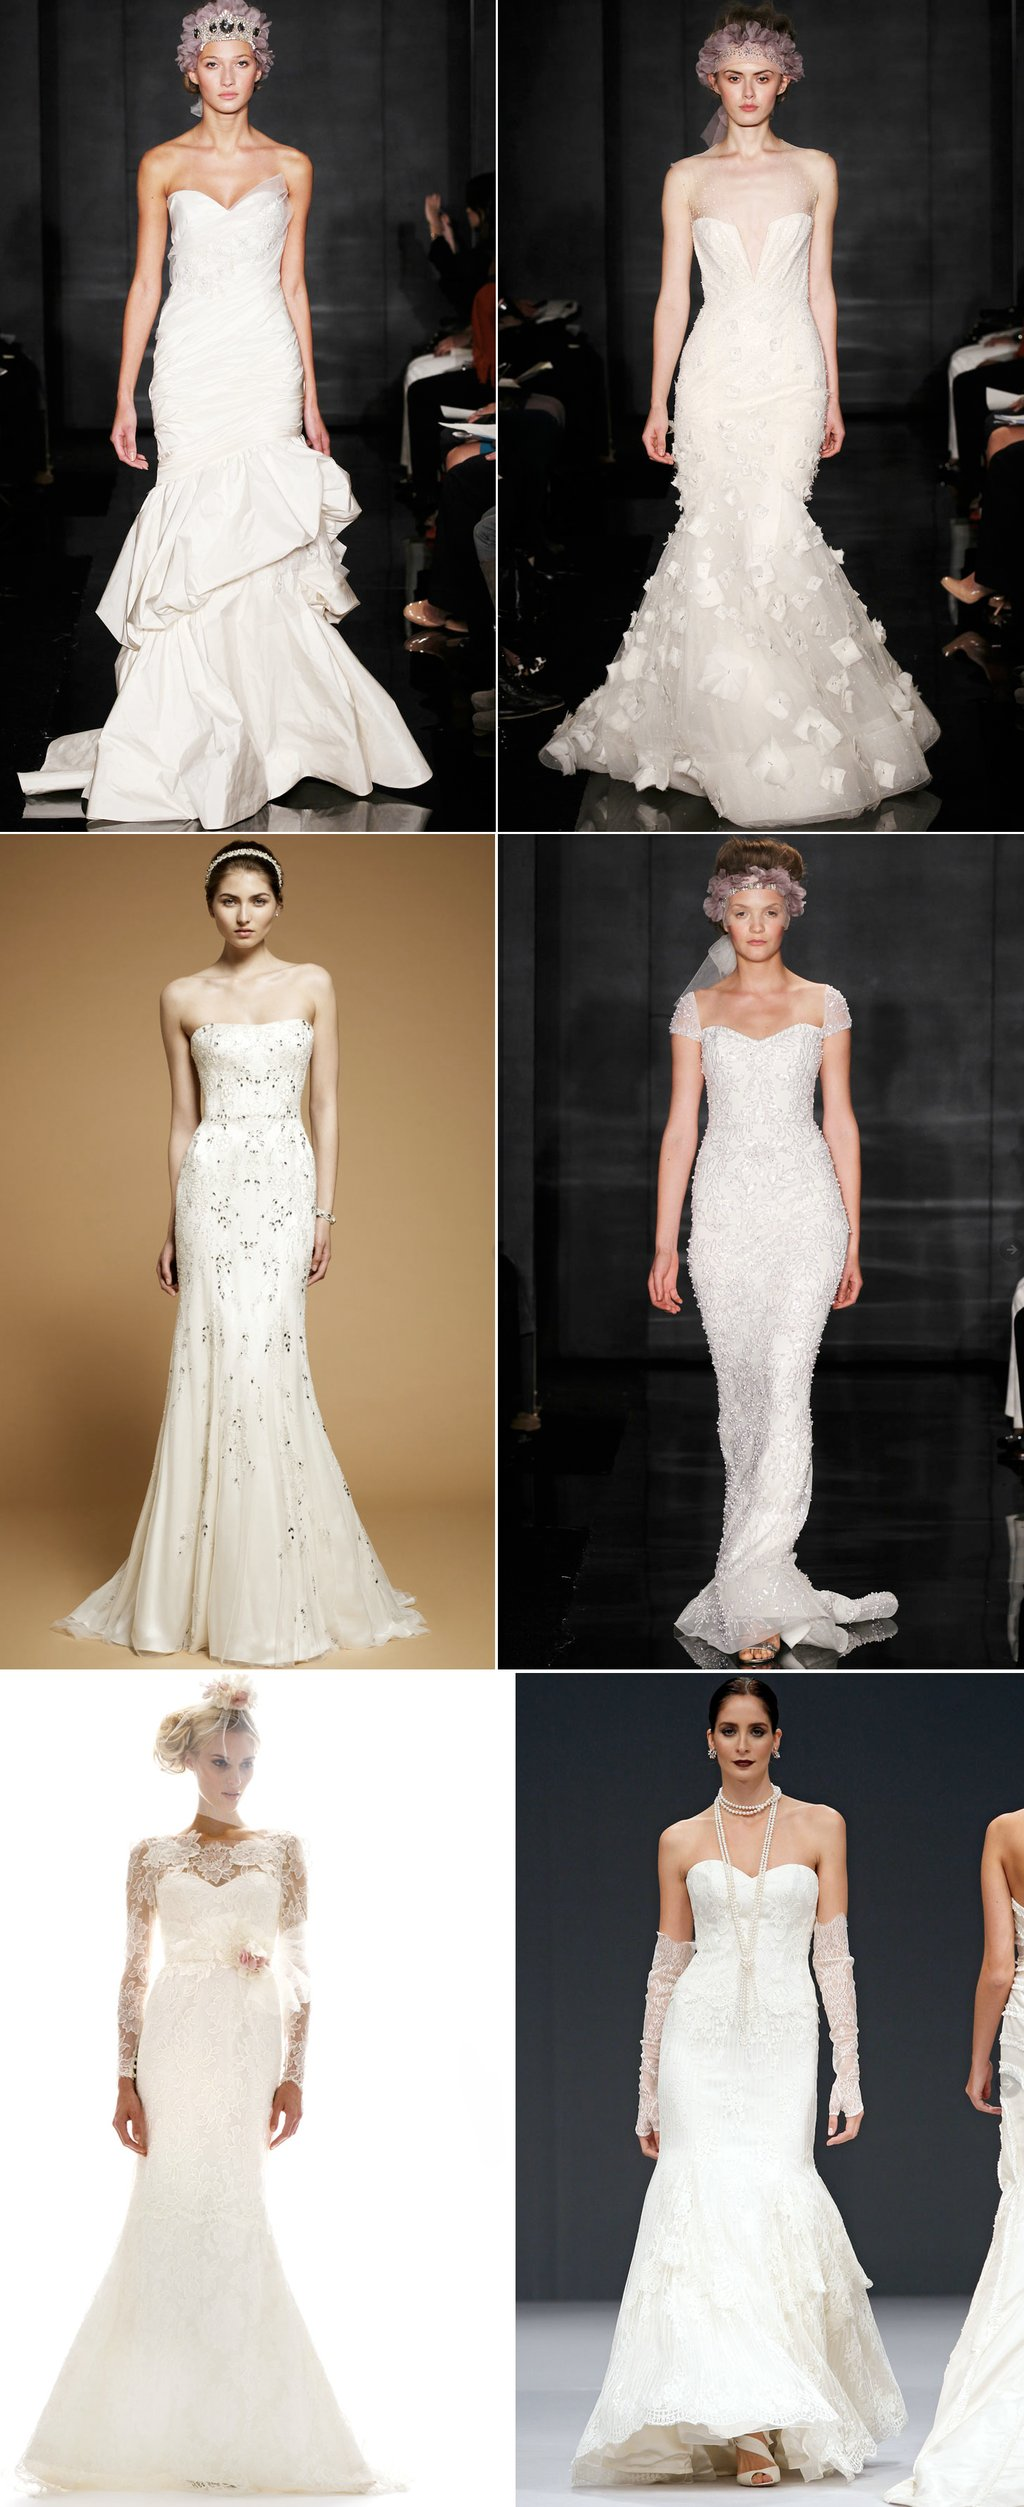 2012-wedding-dresses-mermaid-style-lace-reem-acra-anne-barge.full